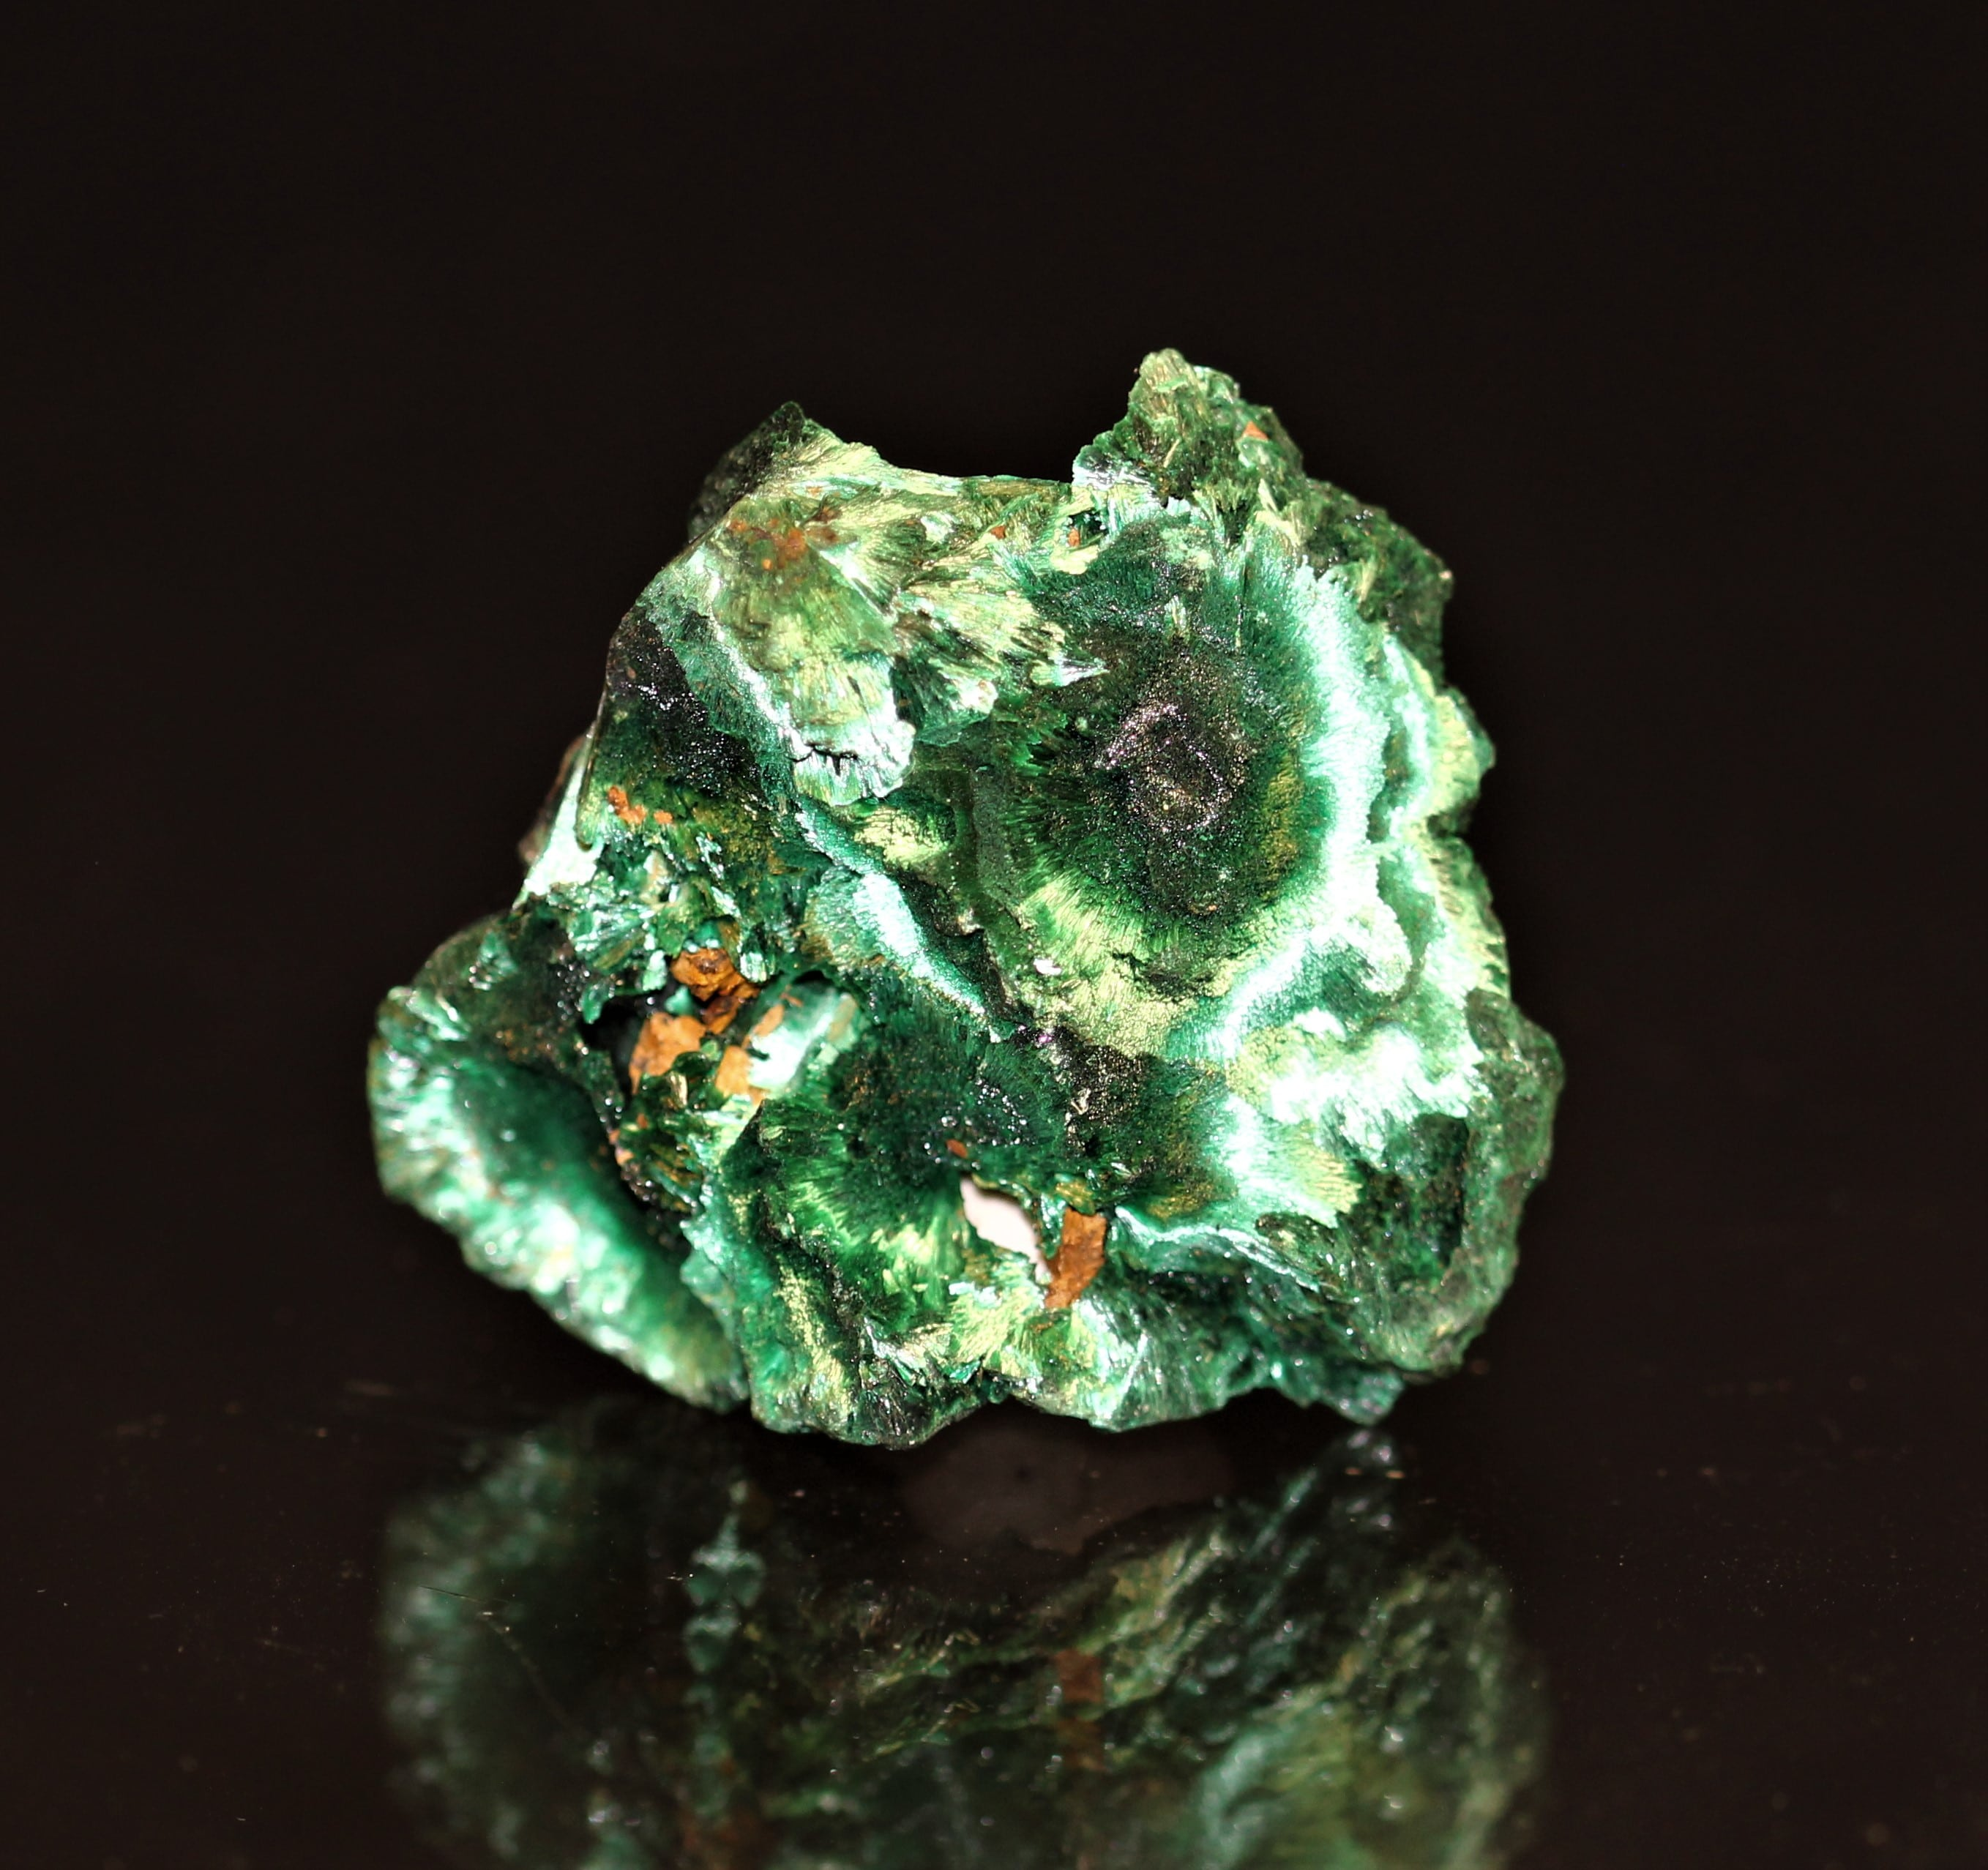 Malachite velours, mine de Chessy, Lyon, Rhône-Alpes.